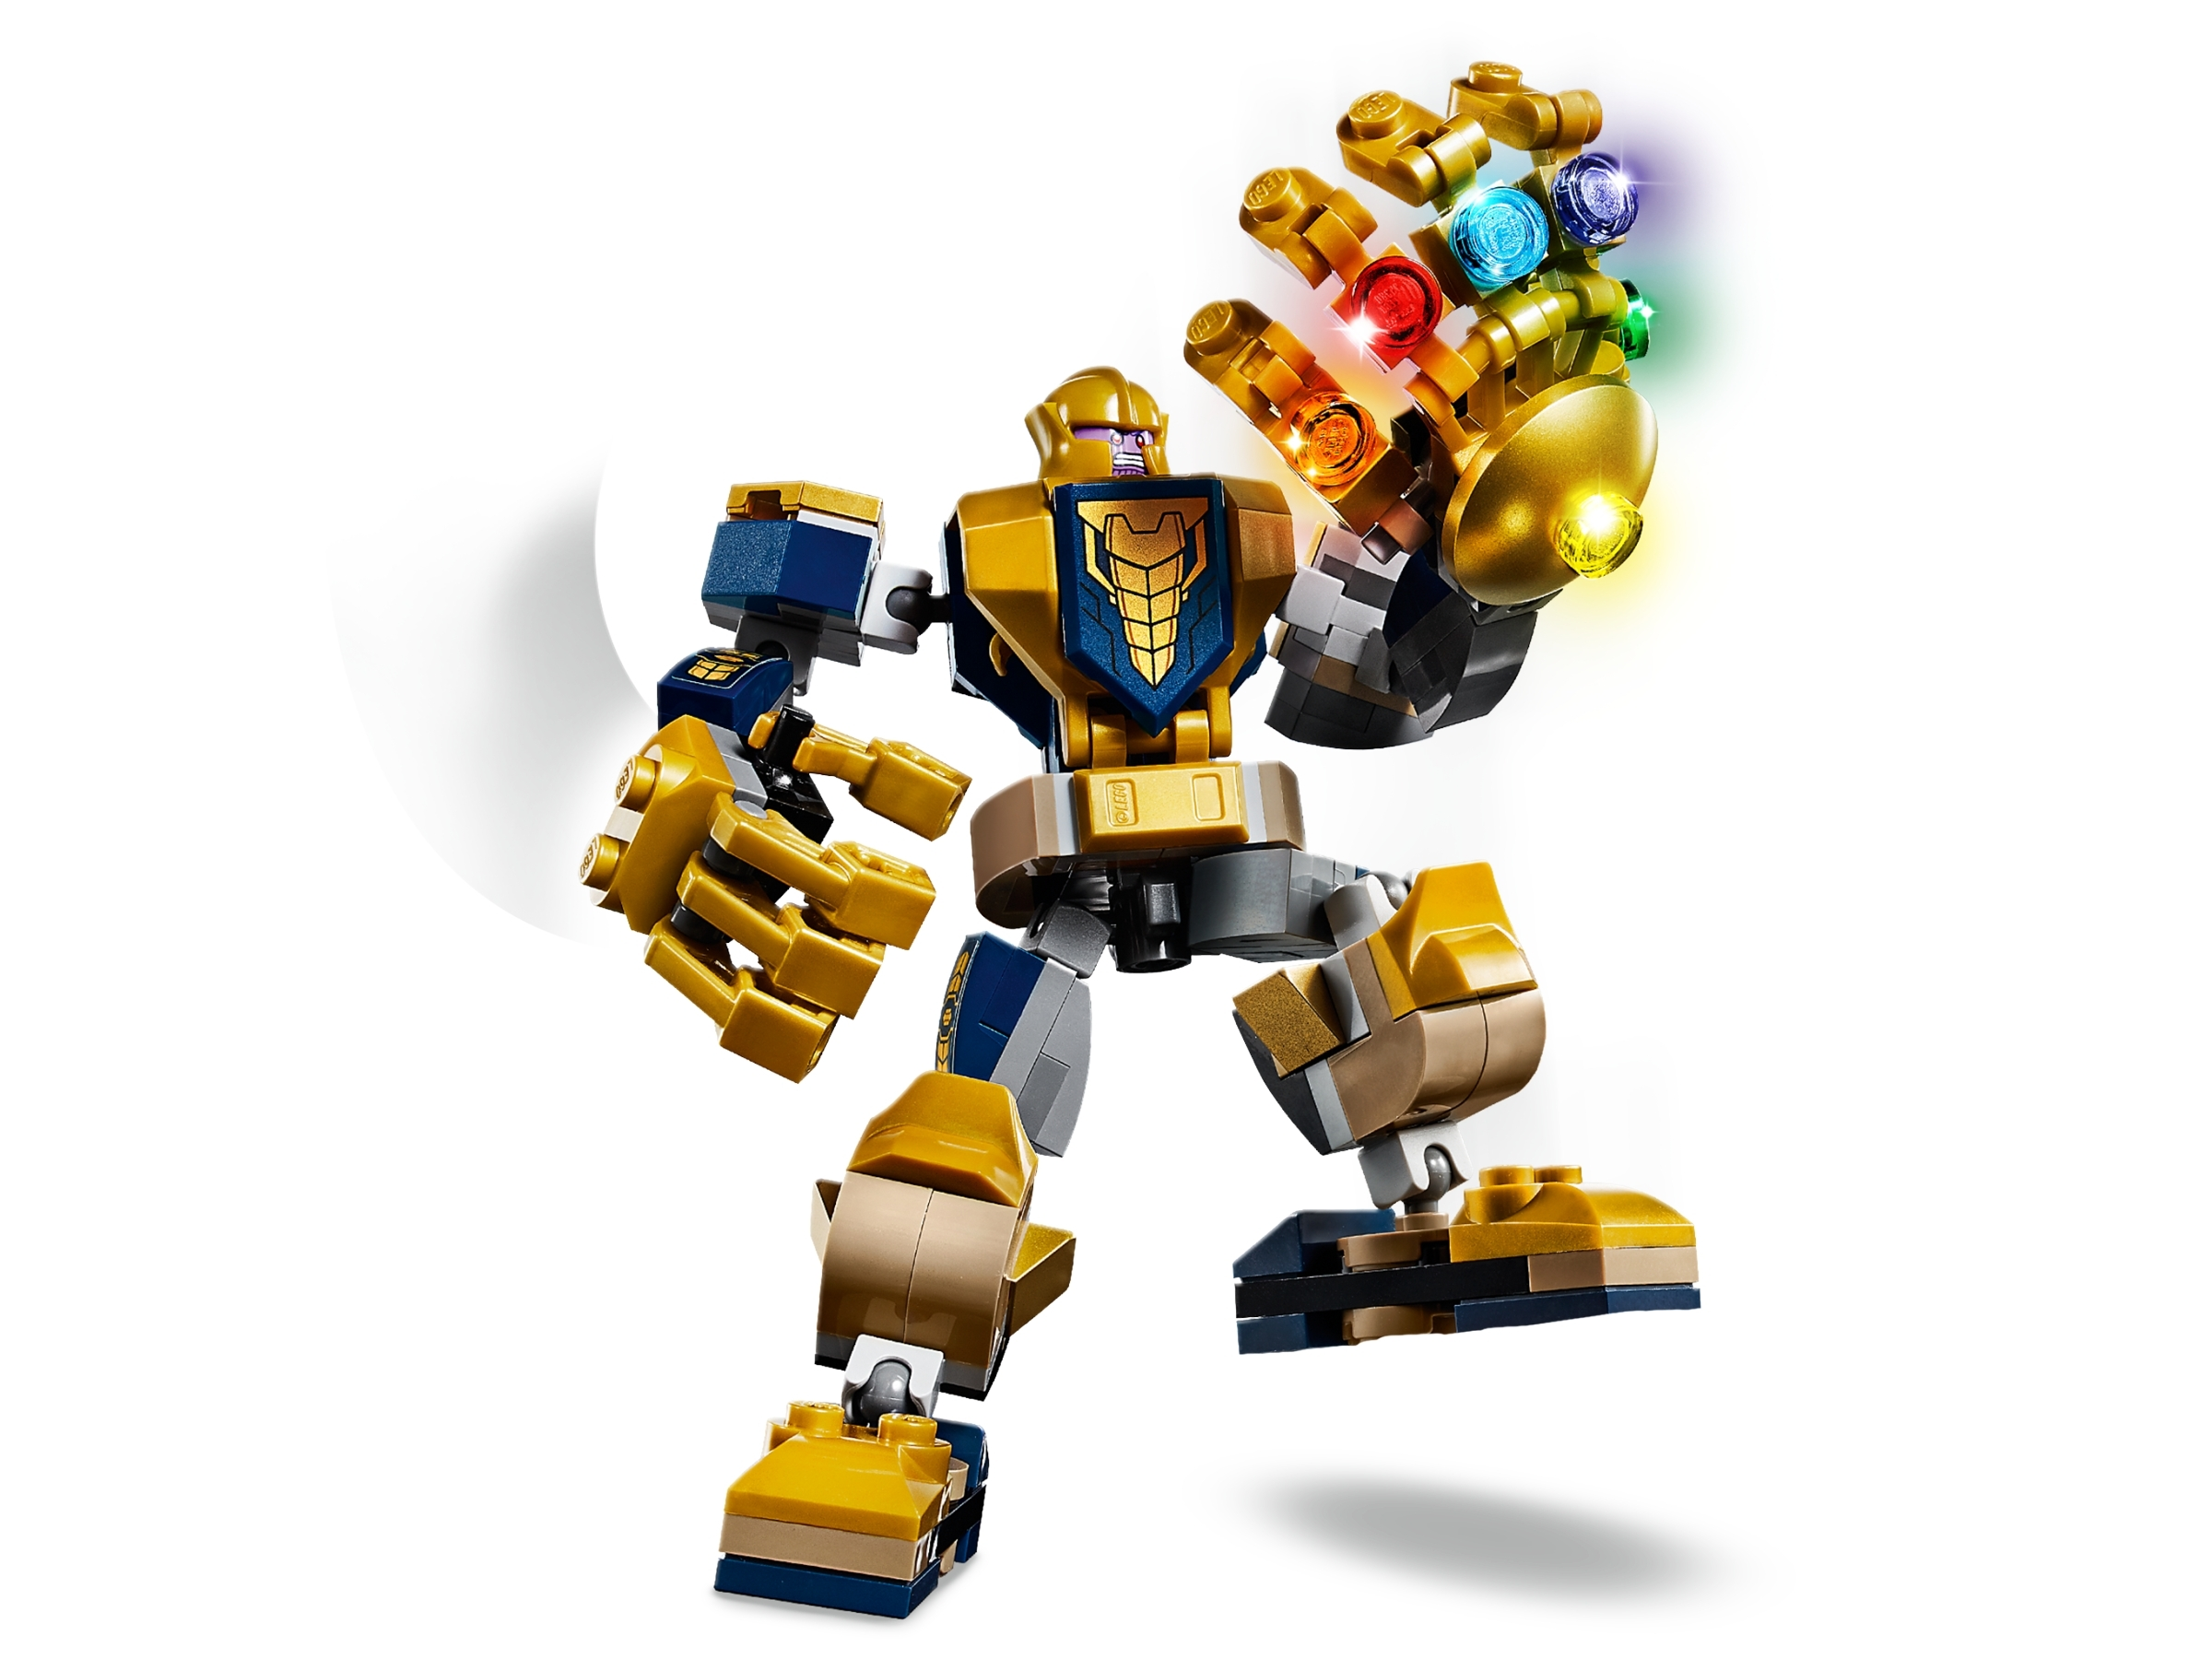 LEGO Marvel Avengers Thanos Mech 76141 Cool Action Building Toy for Kids